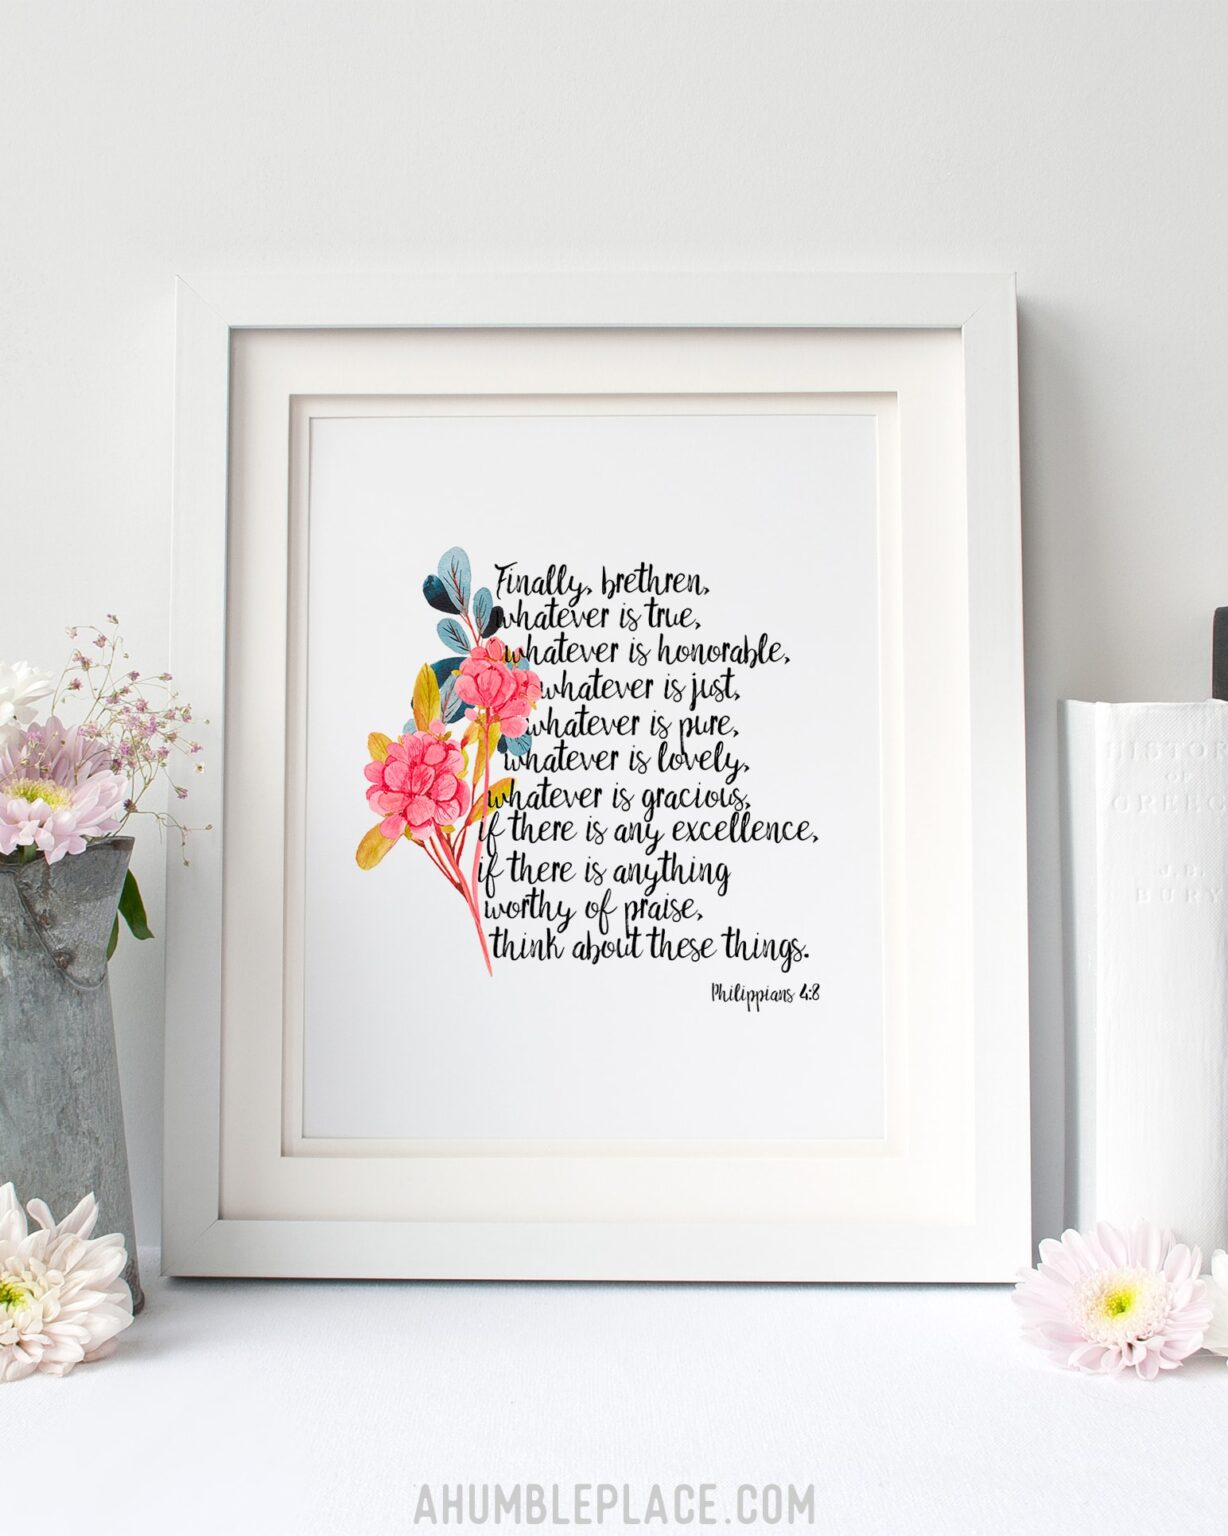 """Philippians 4:8 """"Think about these things..."""" Downloadable Print - ahumbleplace.com"""